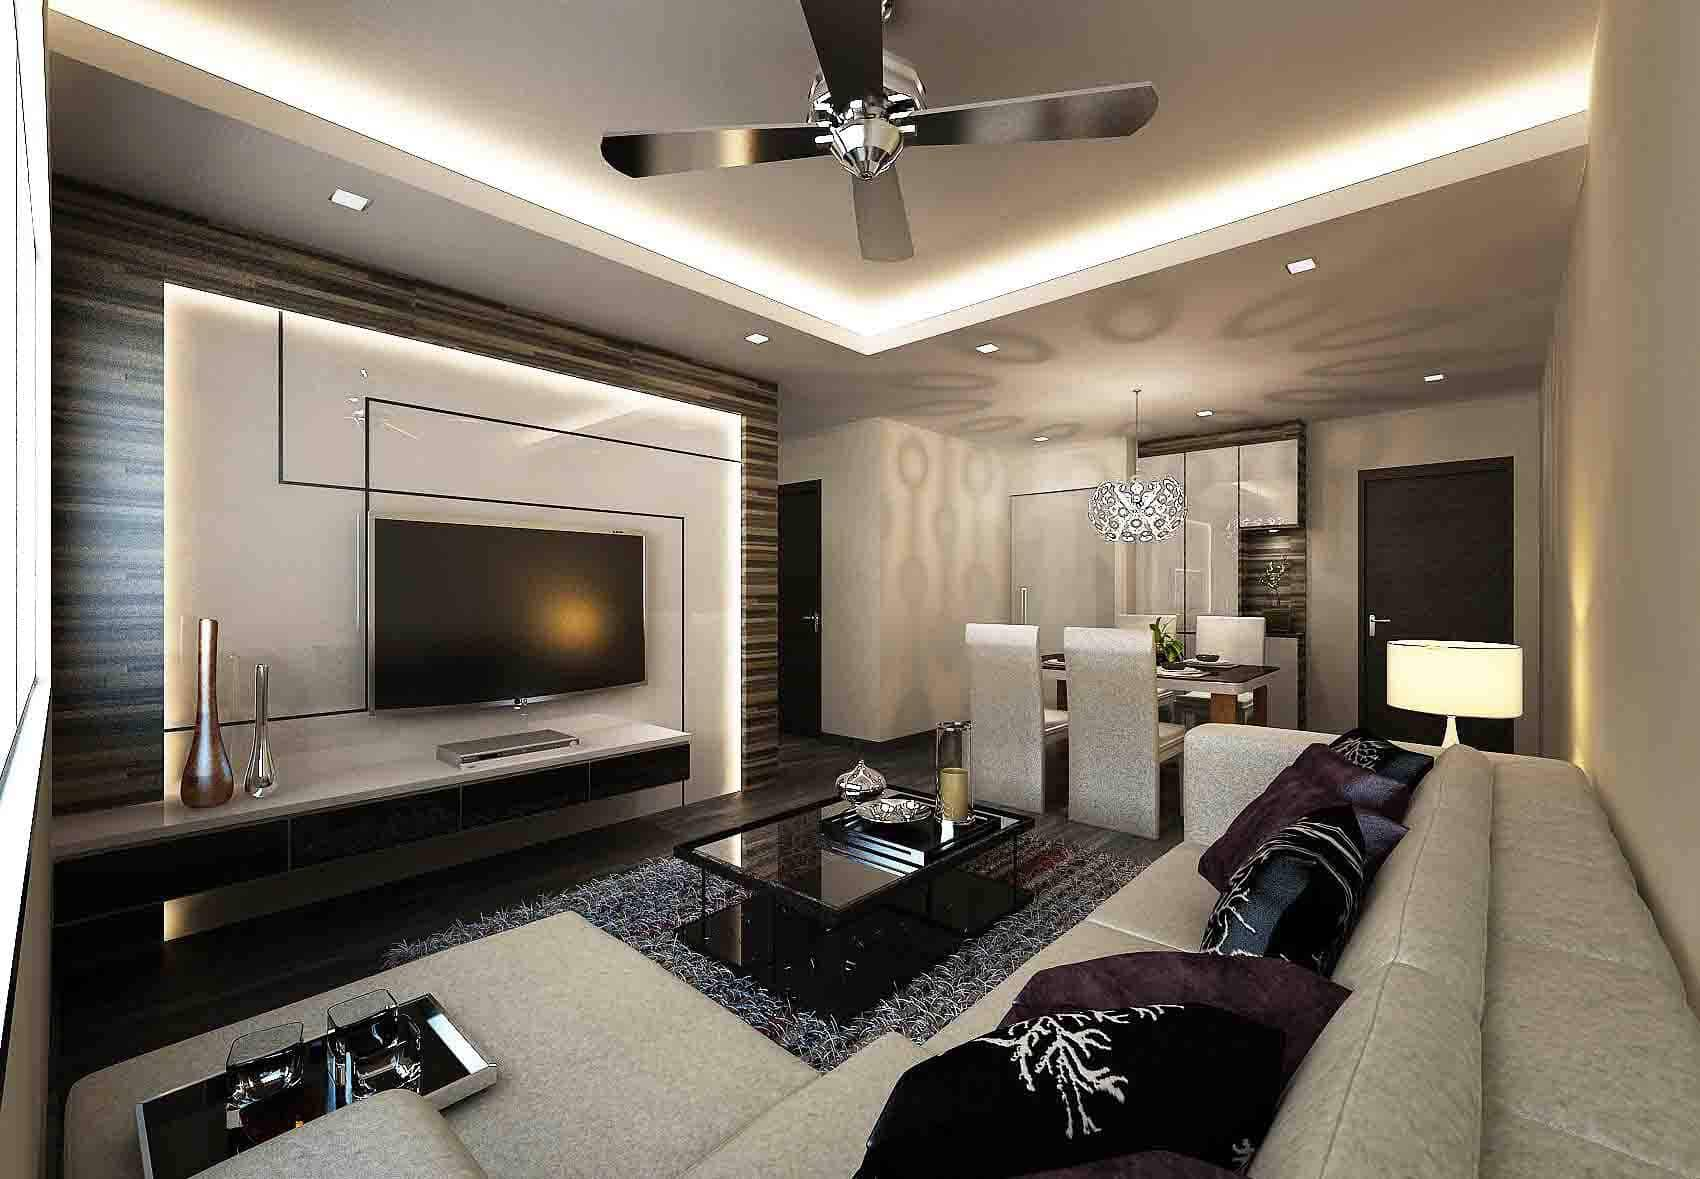 5 elements of a successful living room concept juz interior for Drawing room design images